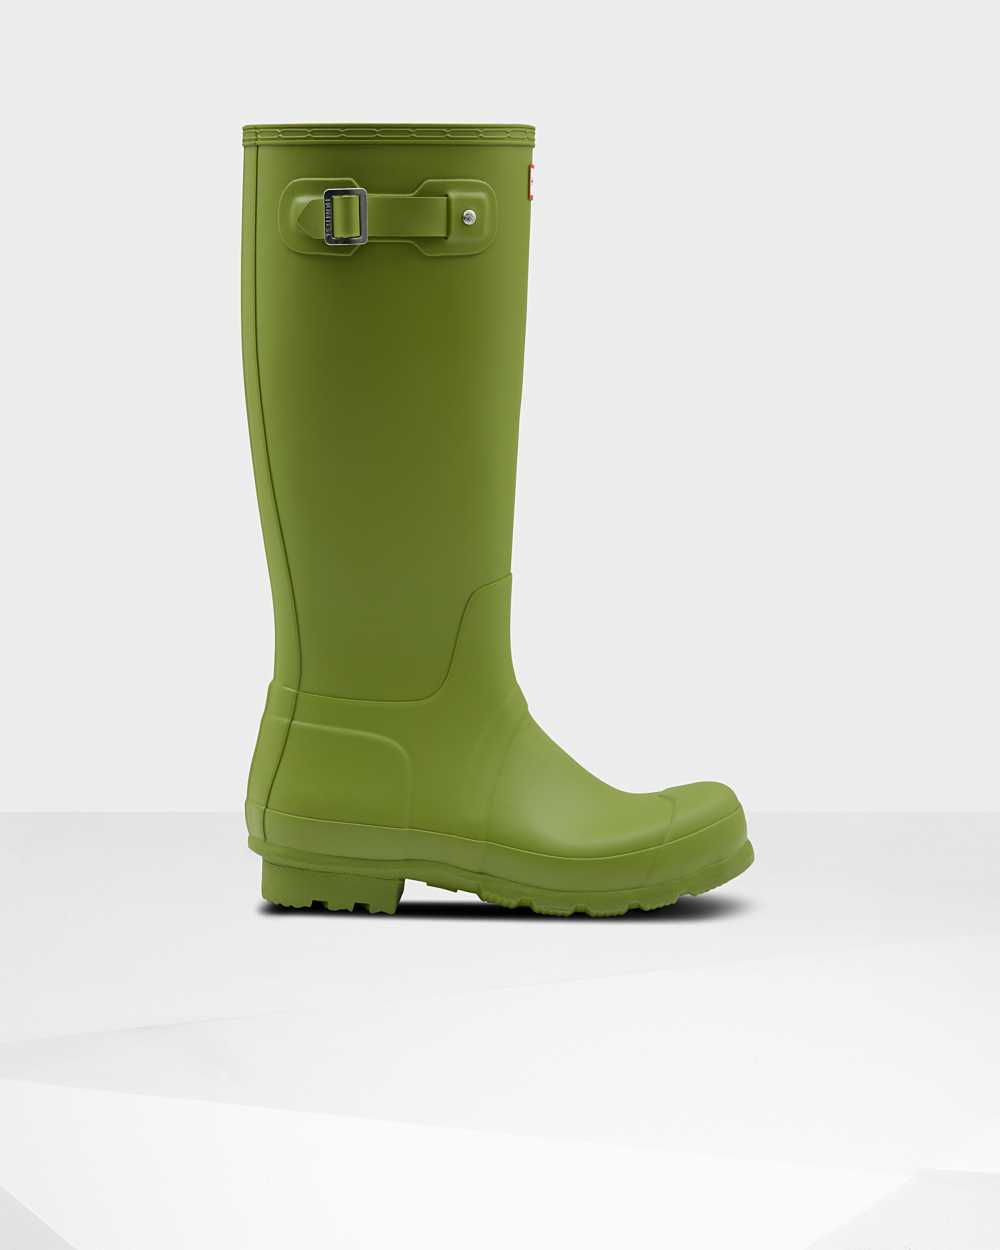 Hunter Original Mens Tall Wellington Rain Boots In Green Australia (FGHU-86324)